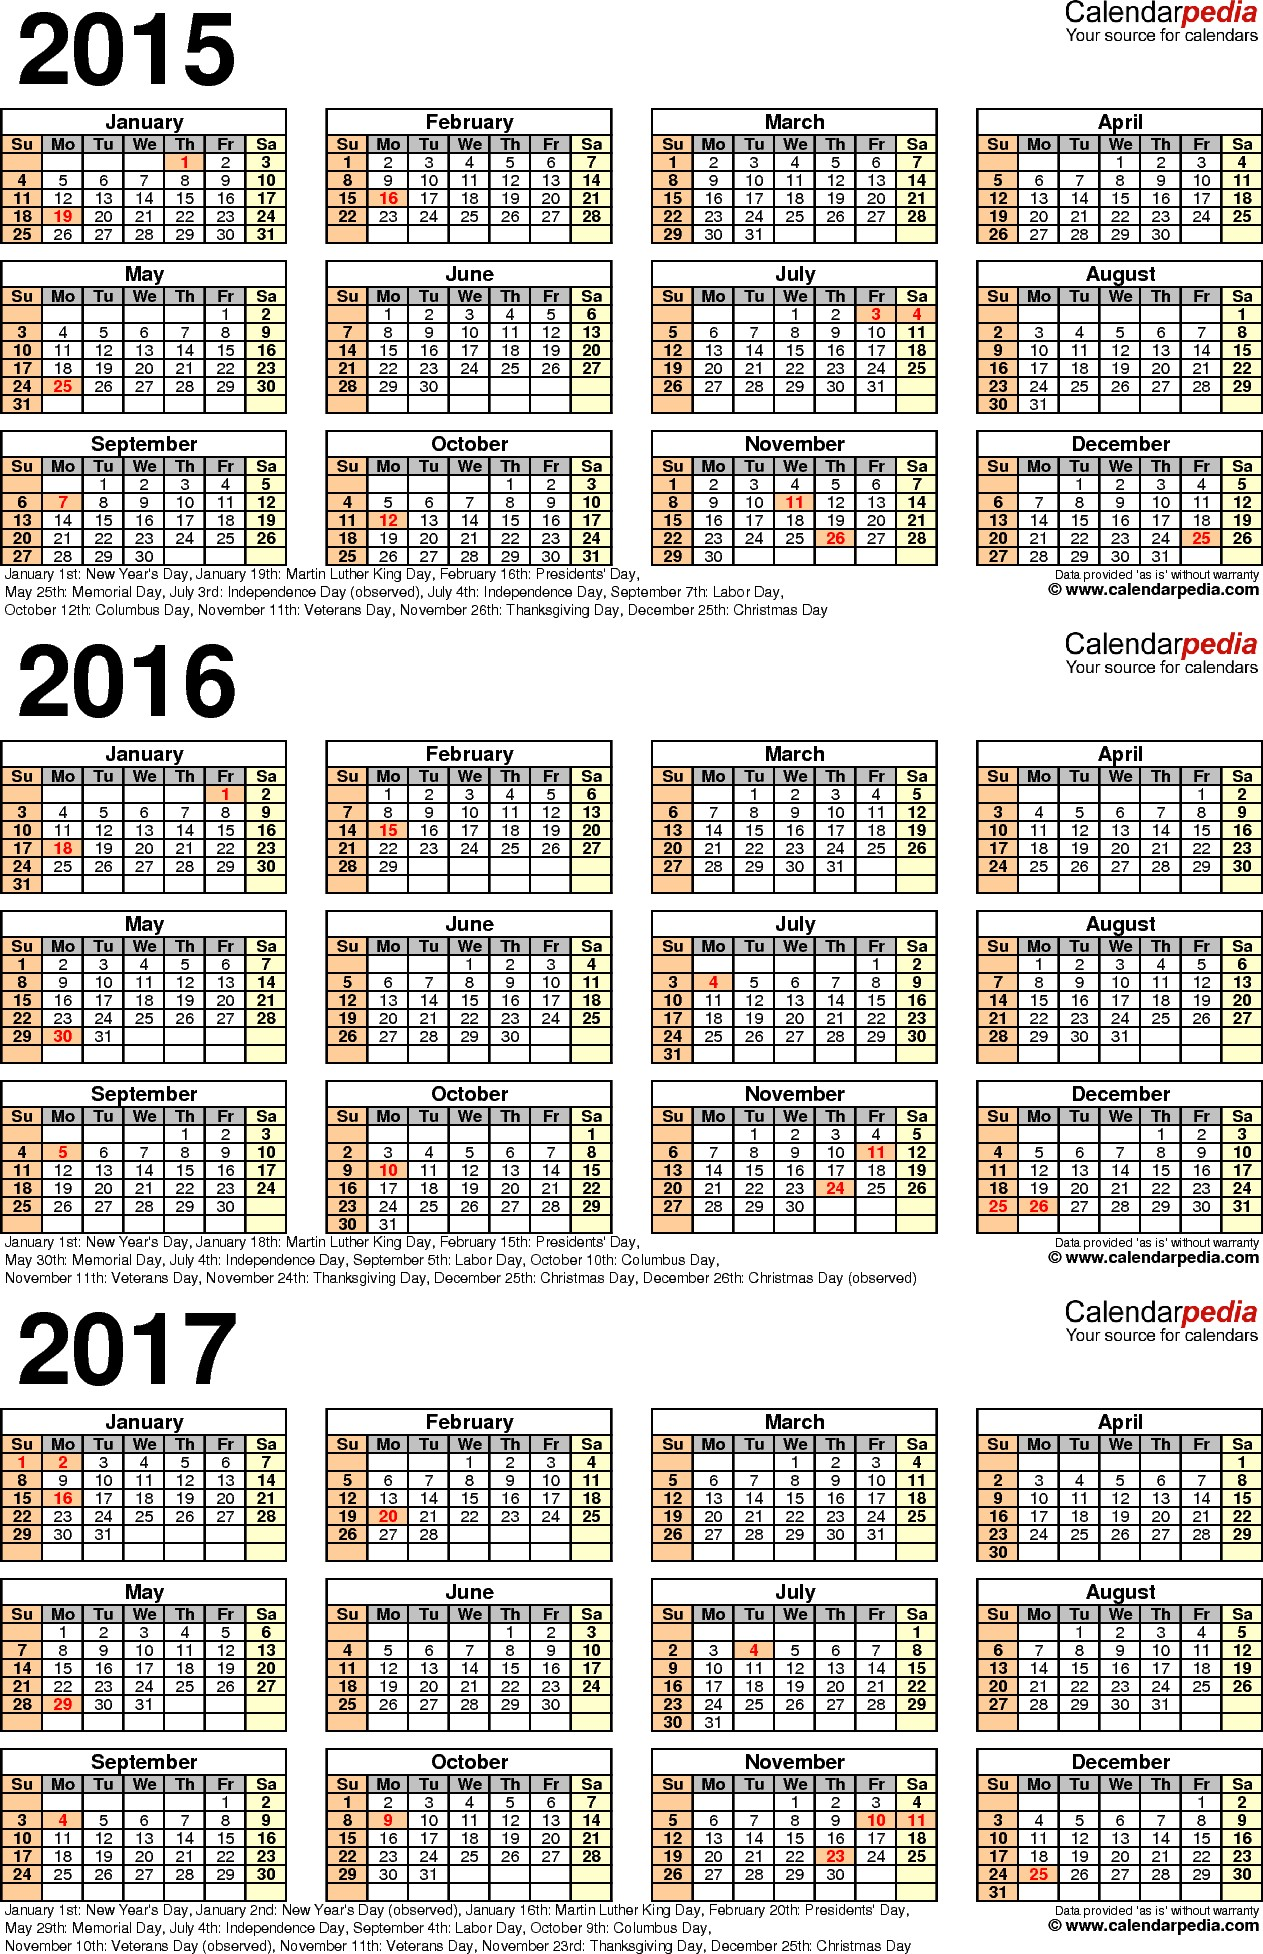 Como Imprimir Un Calendario En Word Más Actual 2015 2016 2017 Calendar 4 Three Year Printable Excel Calendars Of Como Imprimir Un Calendario En Word Recientes Calendario 2017